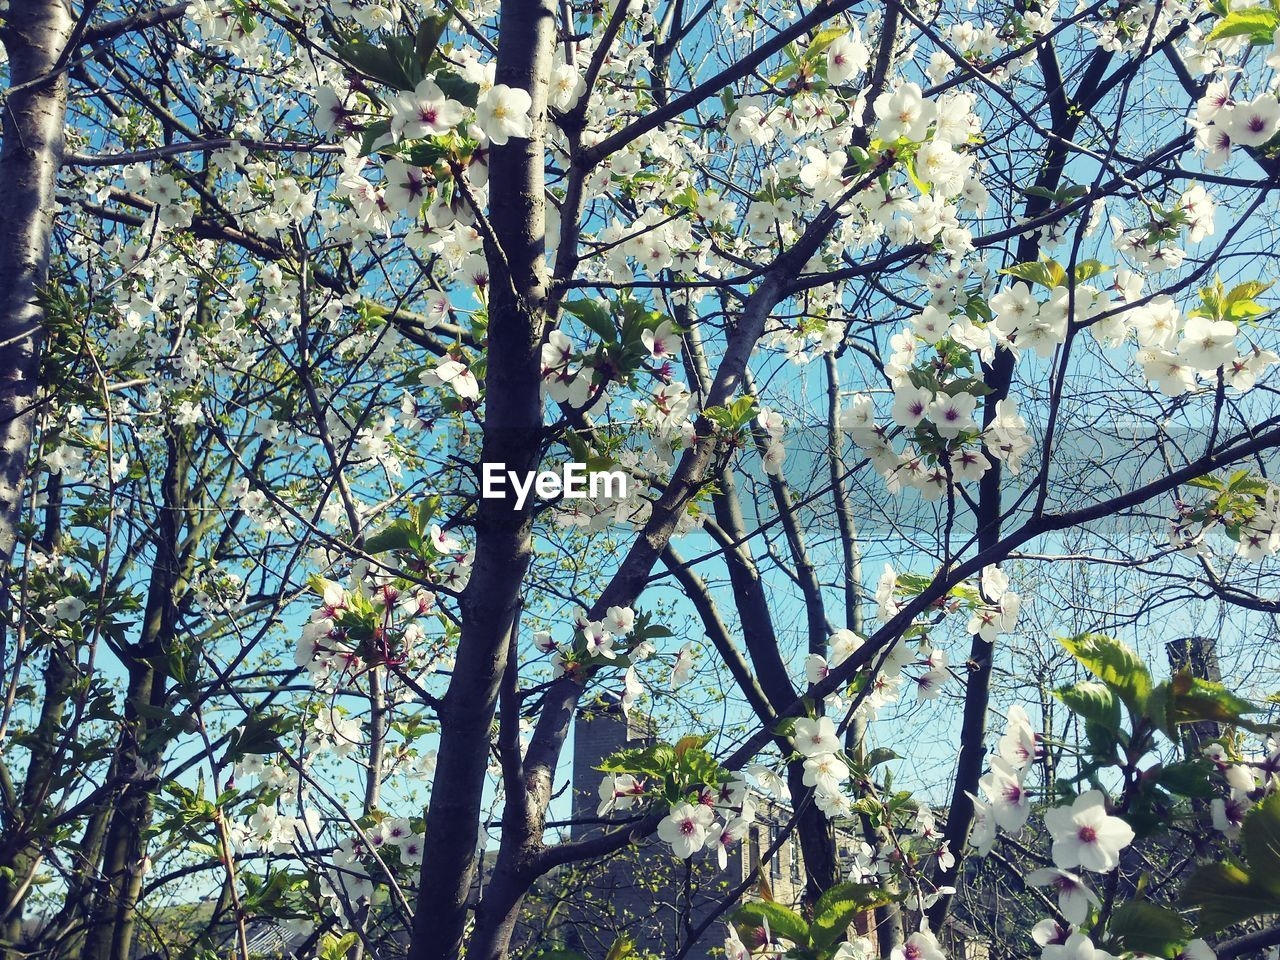 flower, tree, blossom, branch, growth, nature, fragility, springtime, beauty in nature, freshness, apple blossom, orchard, day, no people, low angle view, outdoors, spring, backgrounds, flower head, close-up, sky